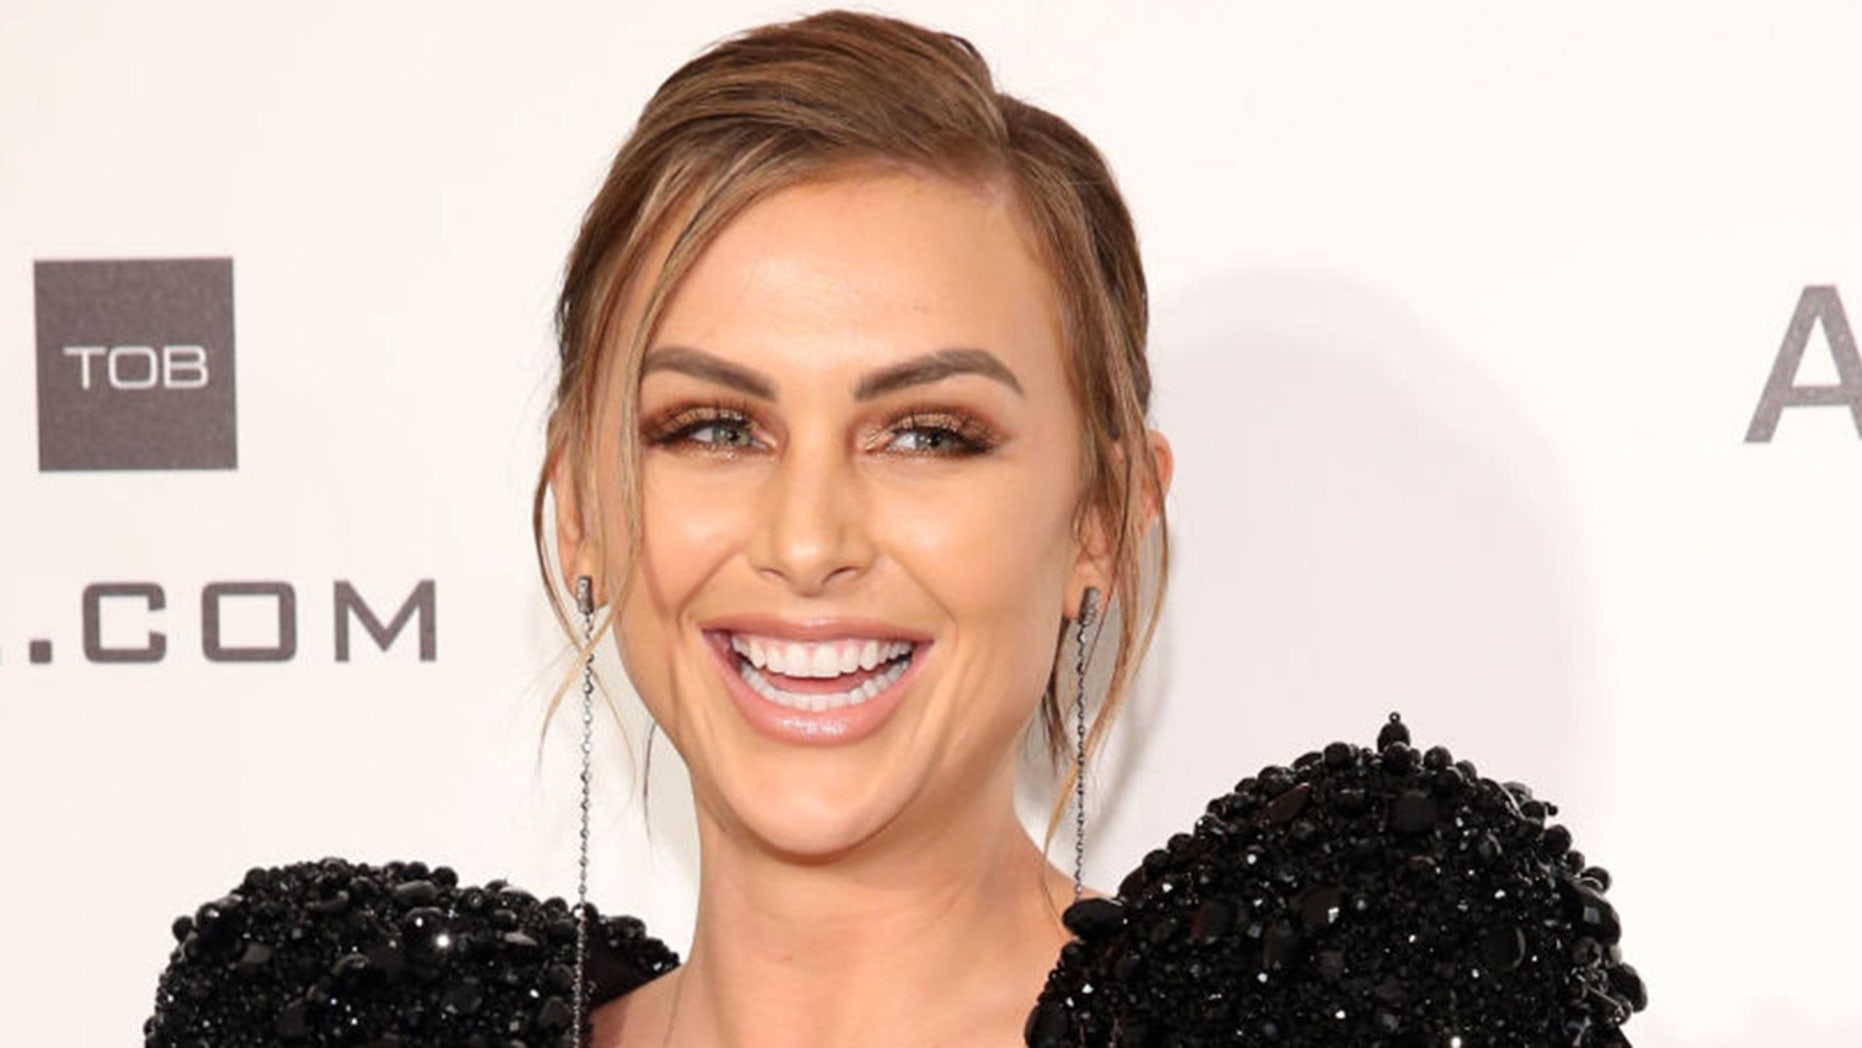 Lala Kent revealed on Sunday that she is an alcoholic.